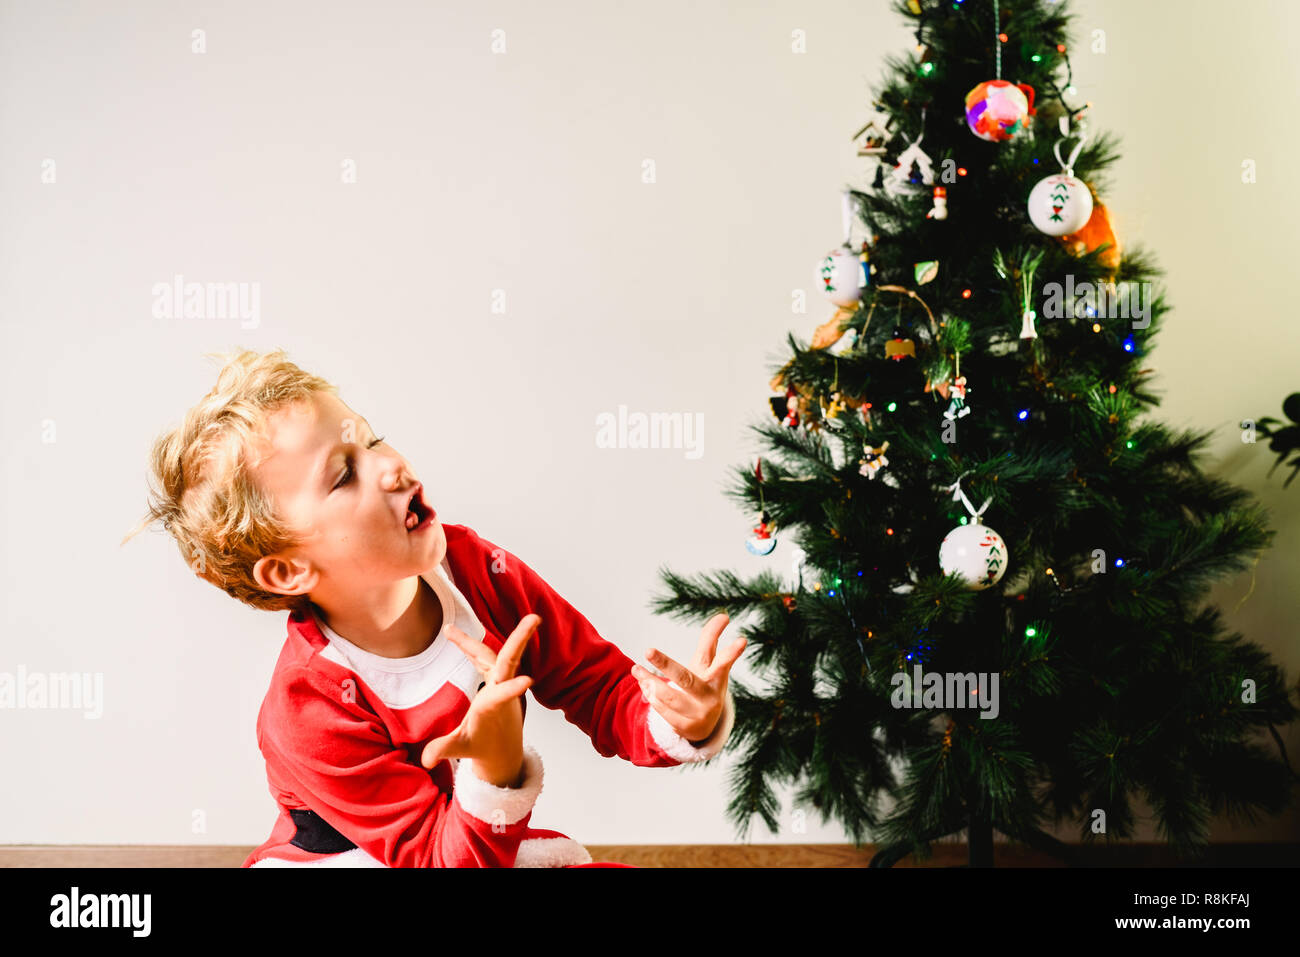 Toddler Christmas Tree Costume.Toddler With Santa Claus Costume Making Faces Next To